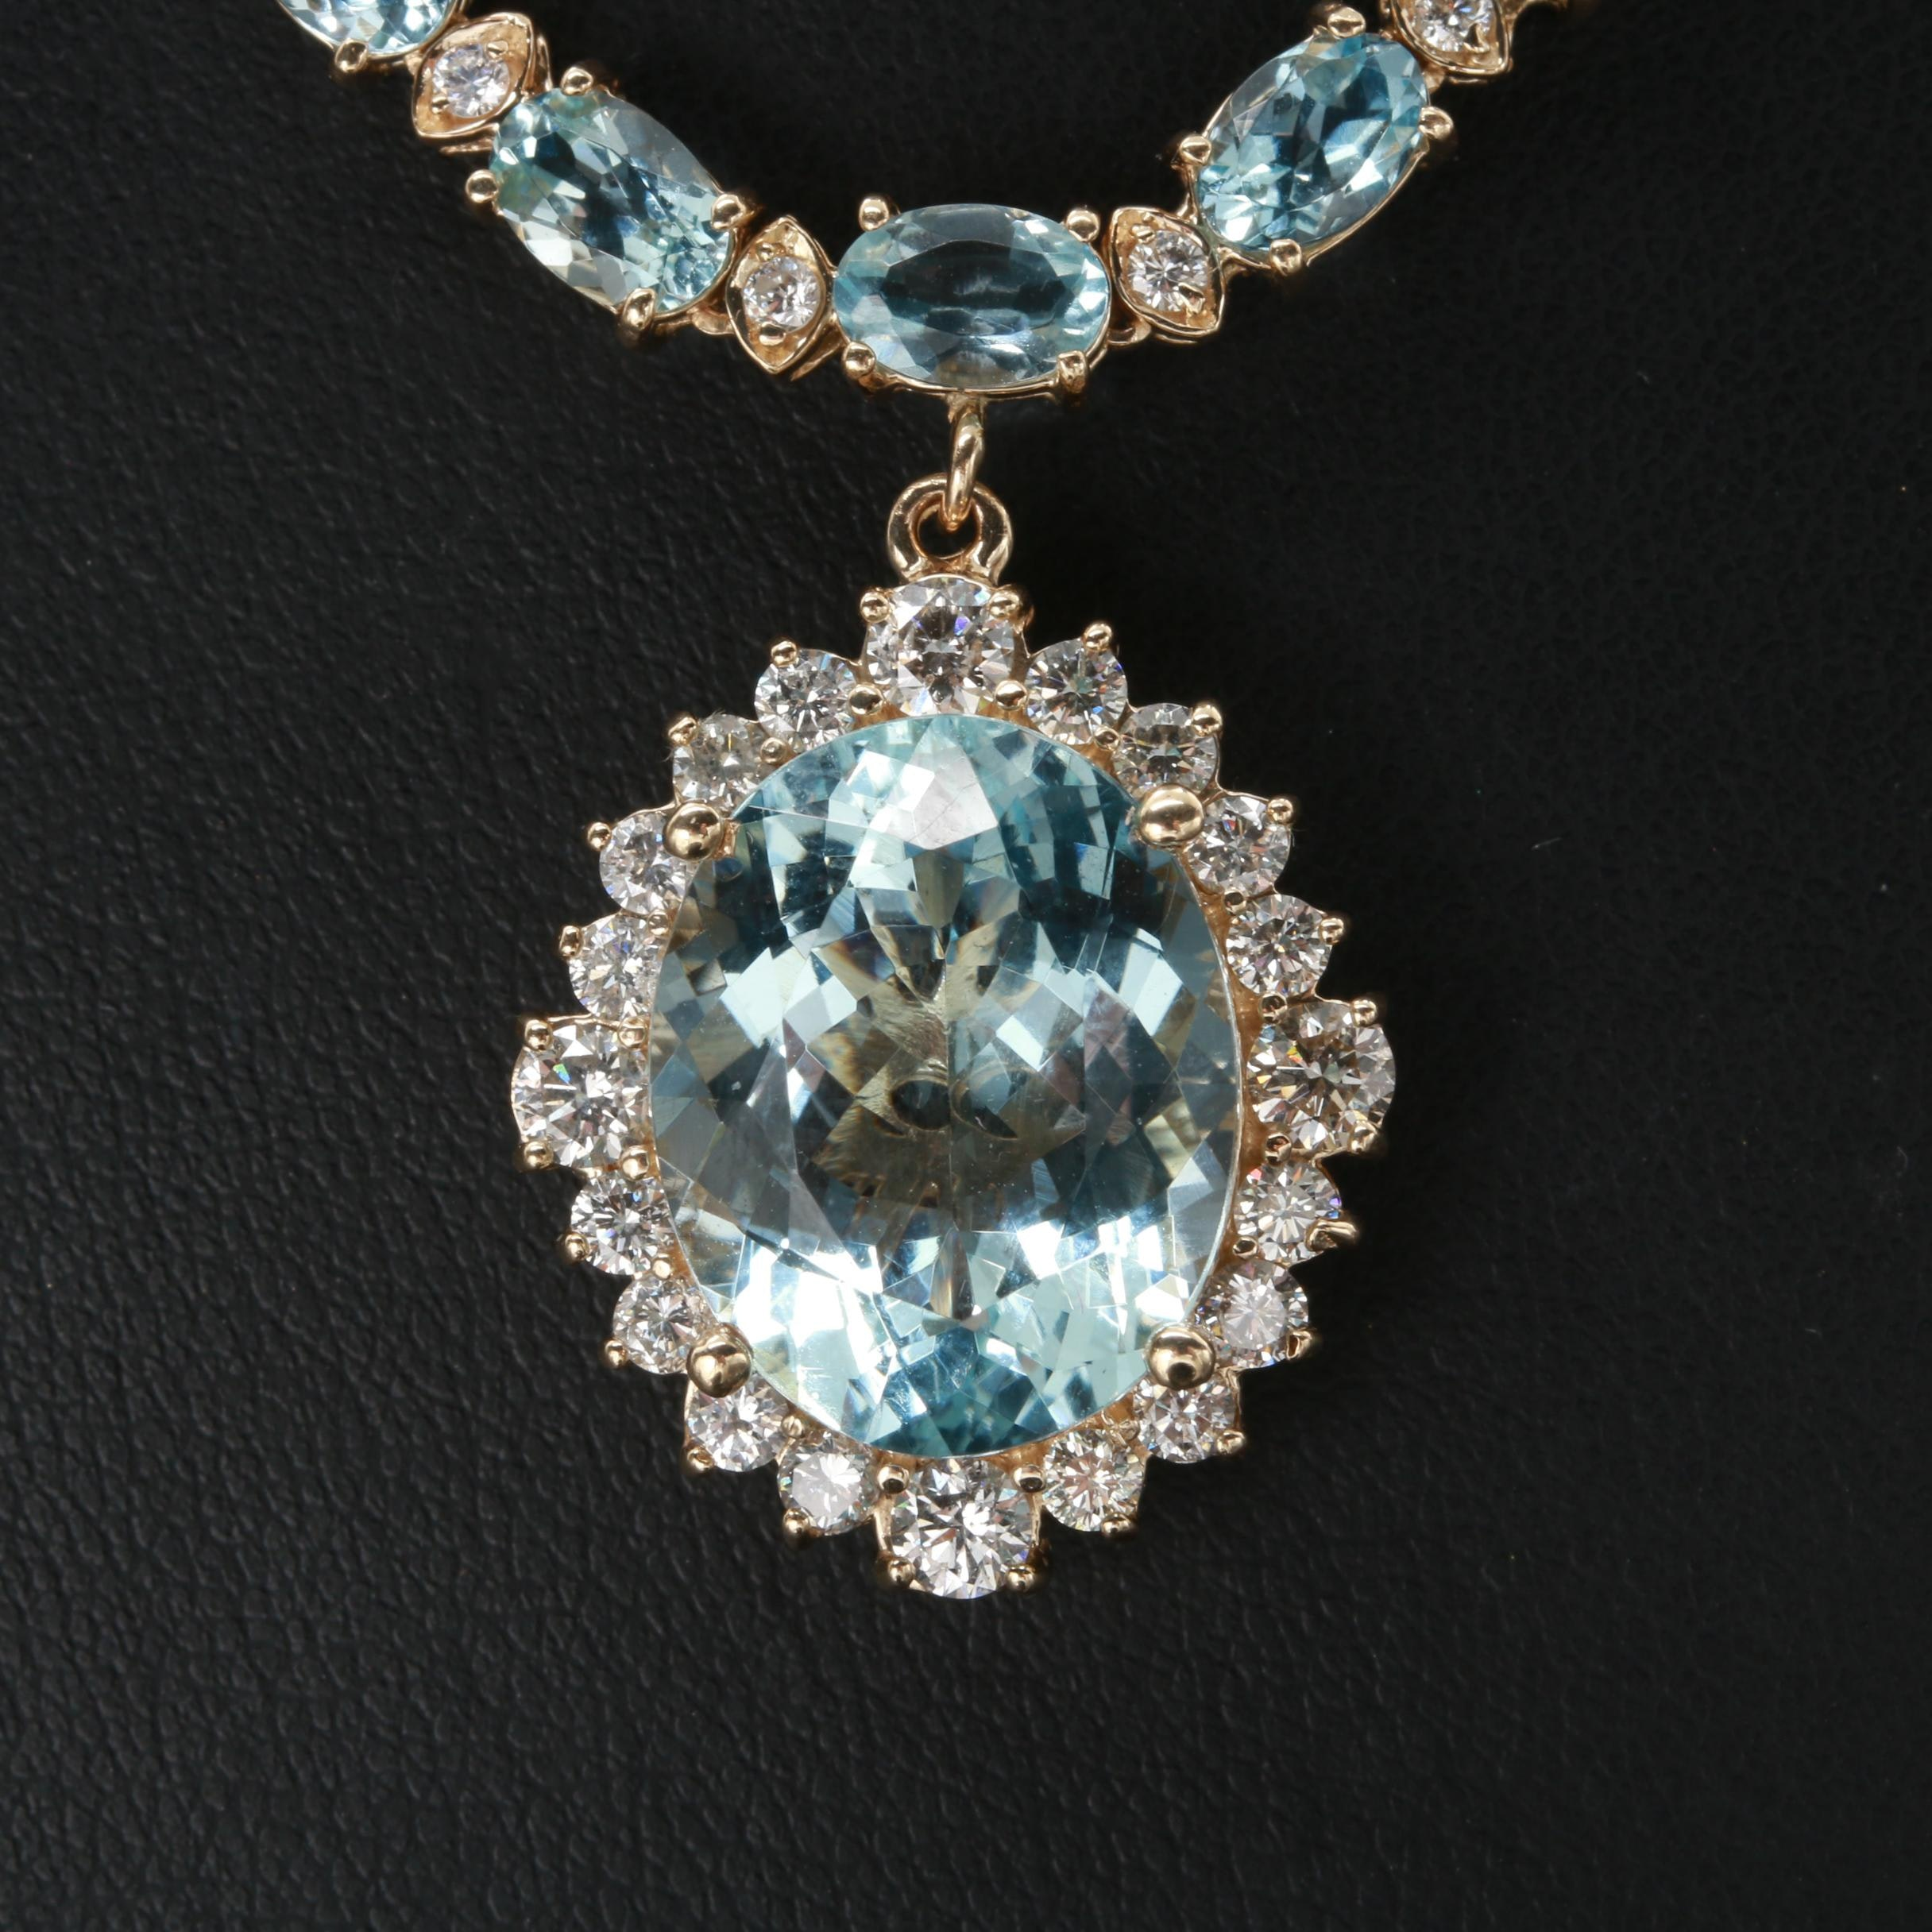 14K Yellow Gold 9.30 CT Aquamarine and 2.52 CTW Diamond Necklace